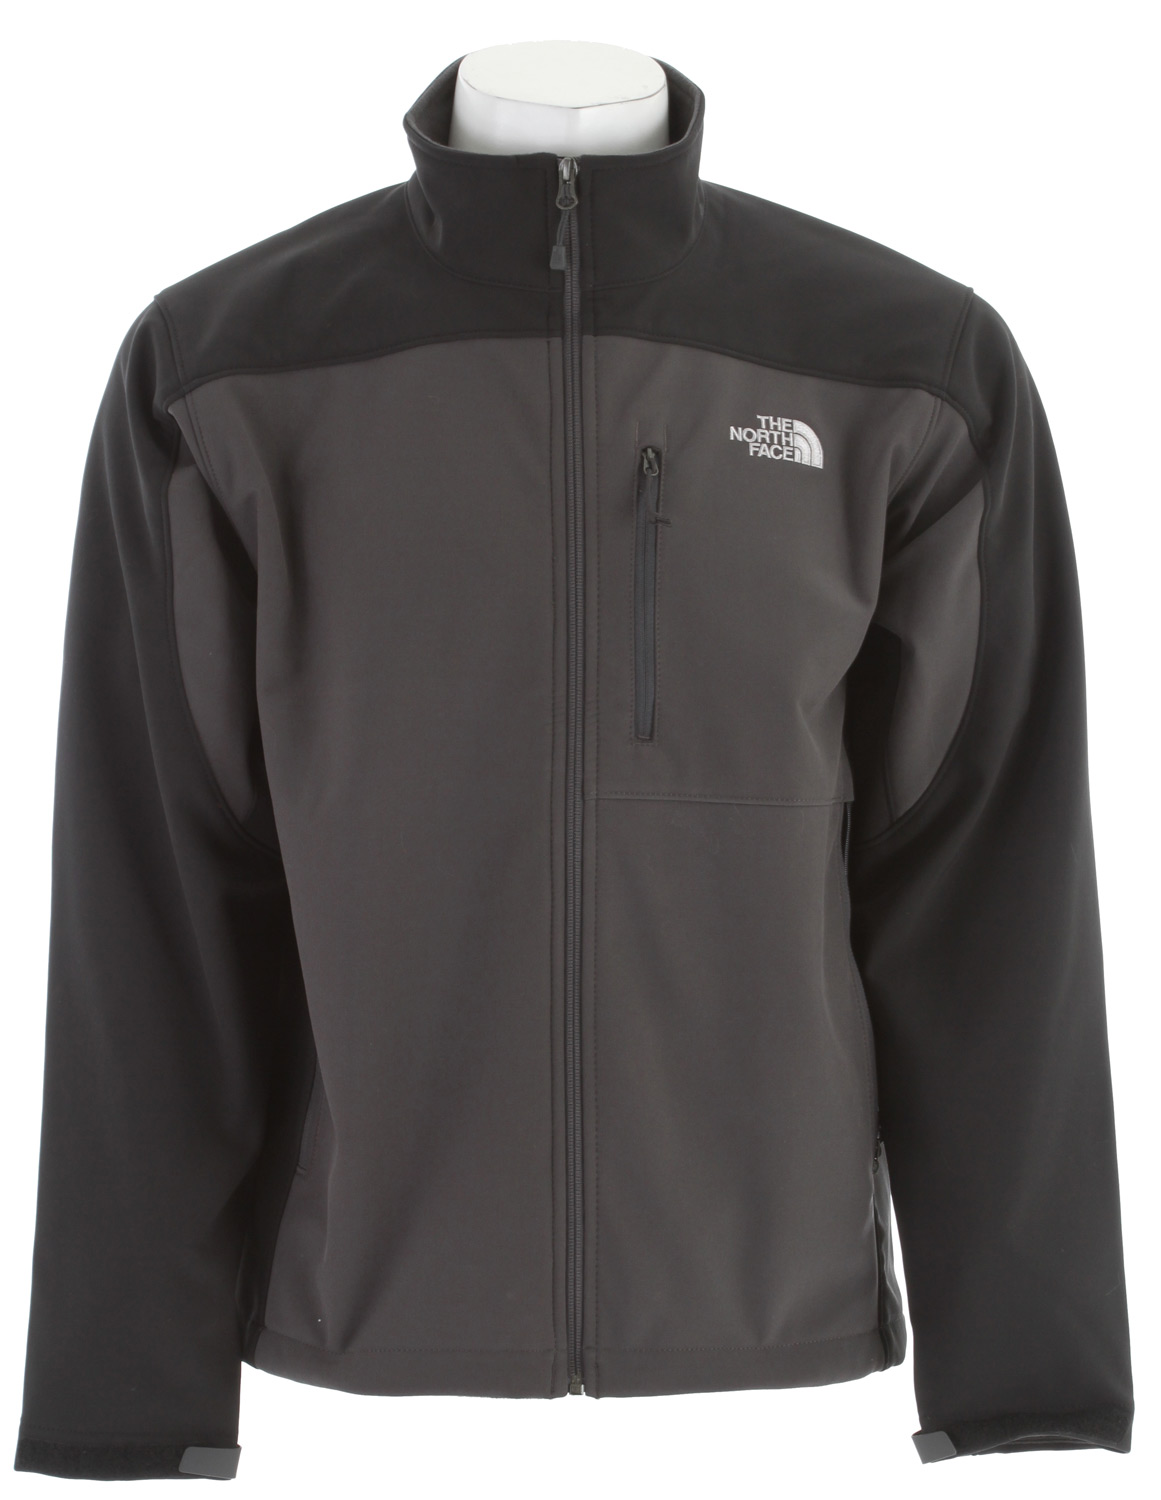 The North Face most versatile and widely worn soft shell has enhanced windproof features and a stretchy, comfortable fit; ideal for multiple activities.Key Features of The North Face Apex Bionic Jacket: Standard fit TNF® Apex ClimateBlock fabric wind permeability rated at 0 CFM Fleece backer Napoleon chest pocket Two hand pockets Velcro® adjustable cuffs with molded cuff tabs Hem cinch-cord adjustment in pockets - $149.00